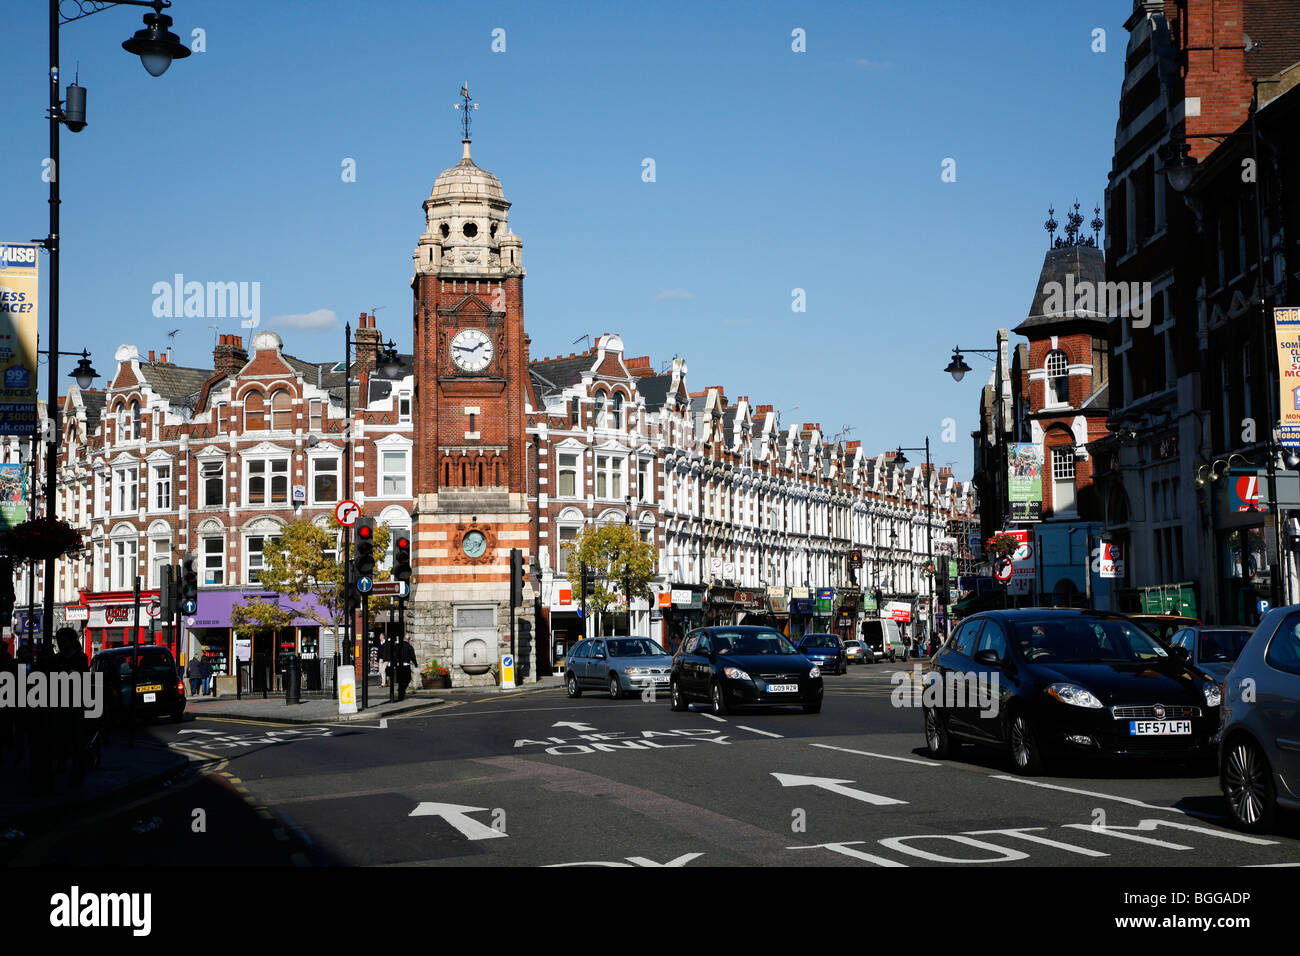 Clocktower en Broadway, Crouch End, Londres, Reino Unido. Imagen De Stock